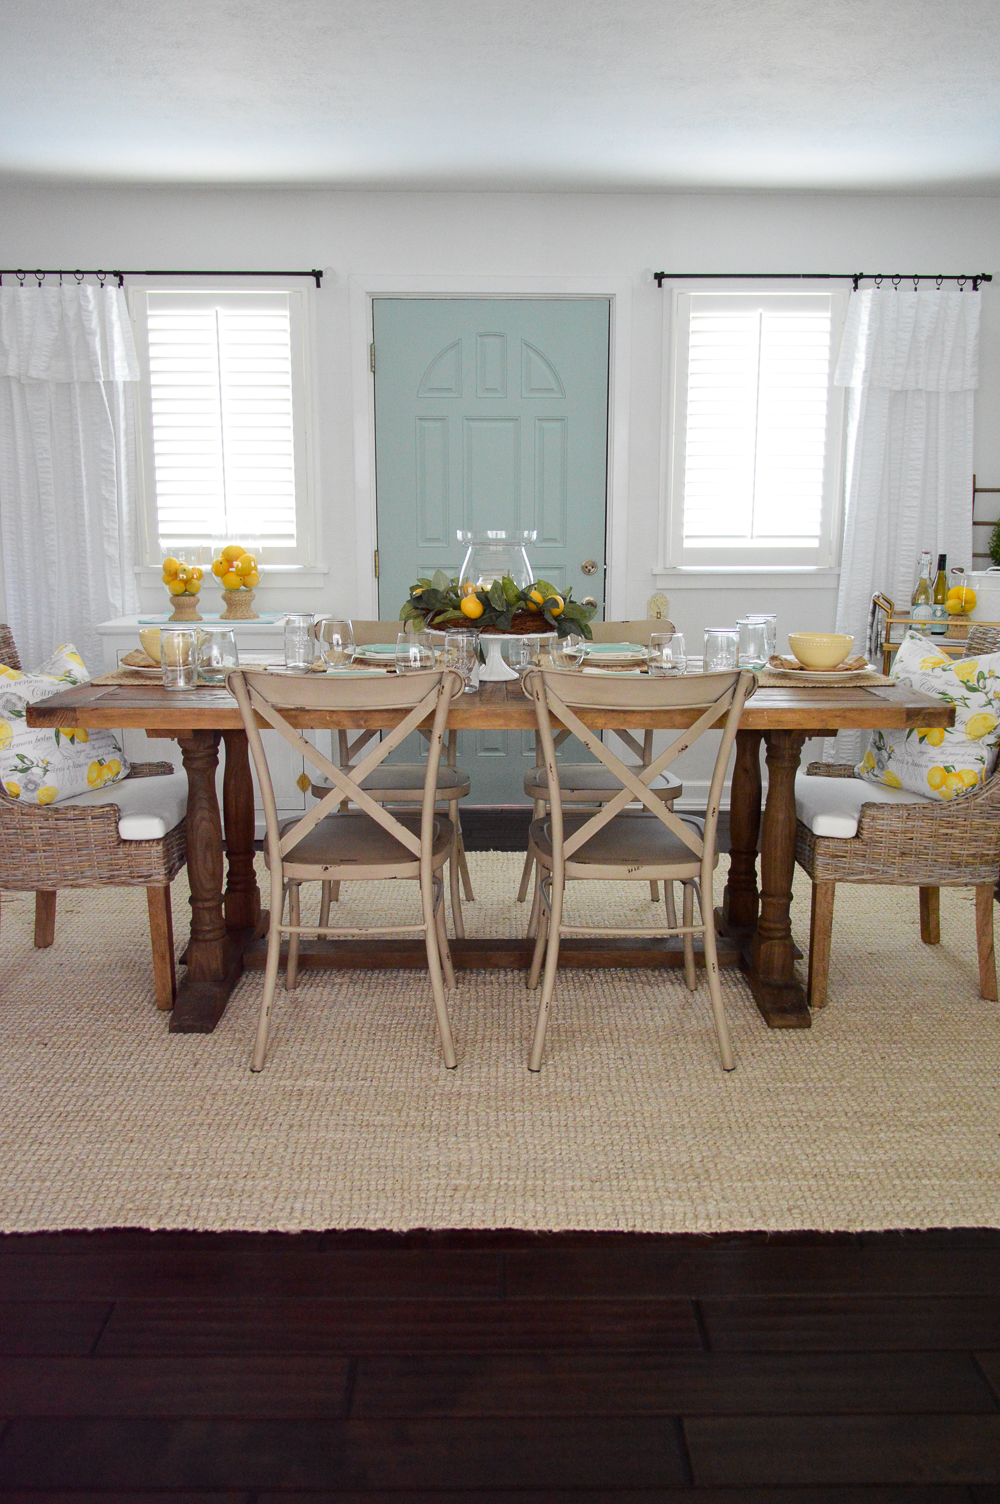 Farm table setting tablescape ideas with simple centerpiece solutions!